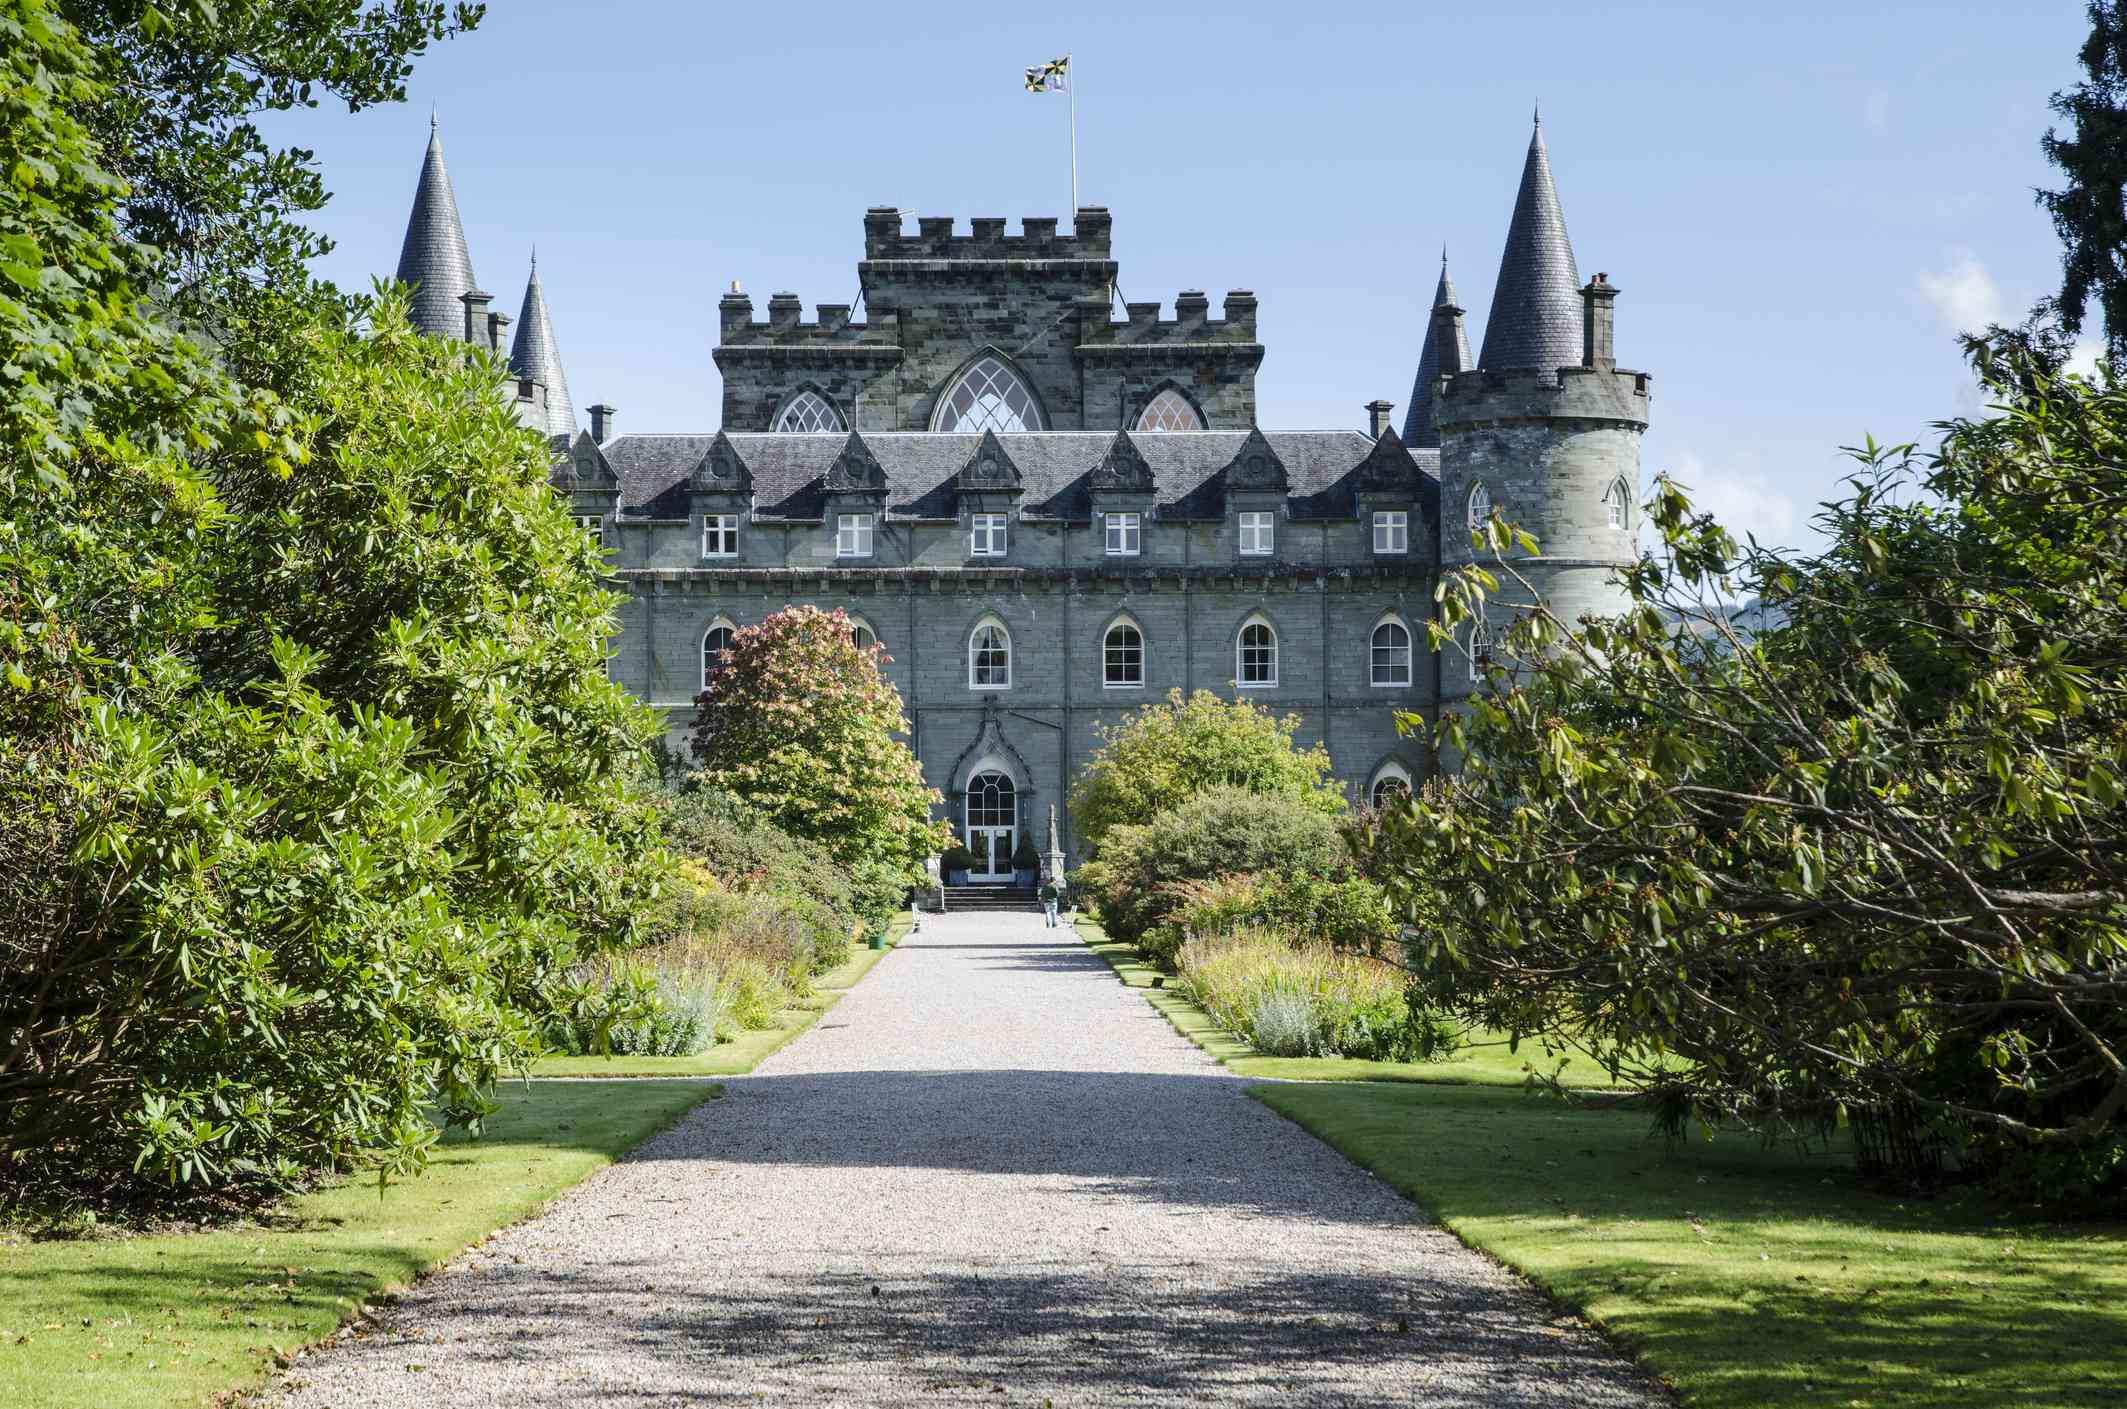 tree-lined gravel path leading to the neo-Gothic style Inveraray Castle